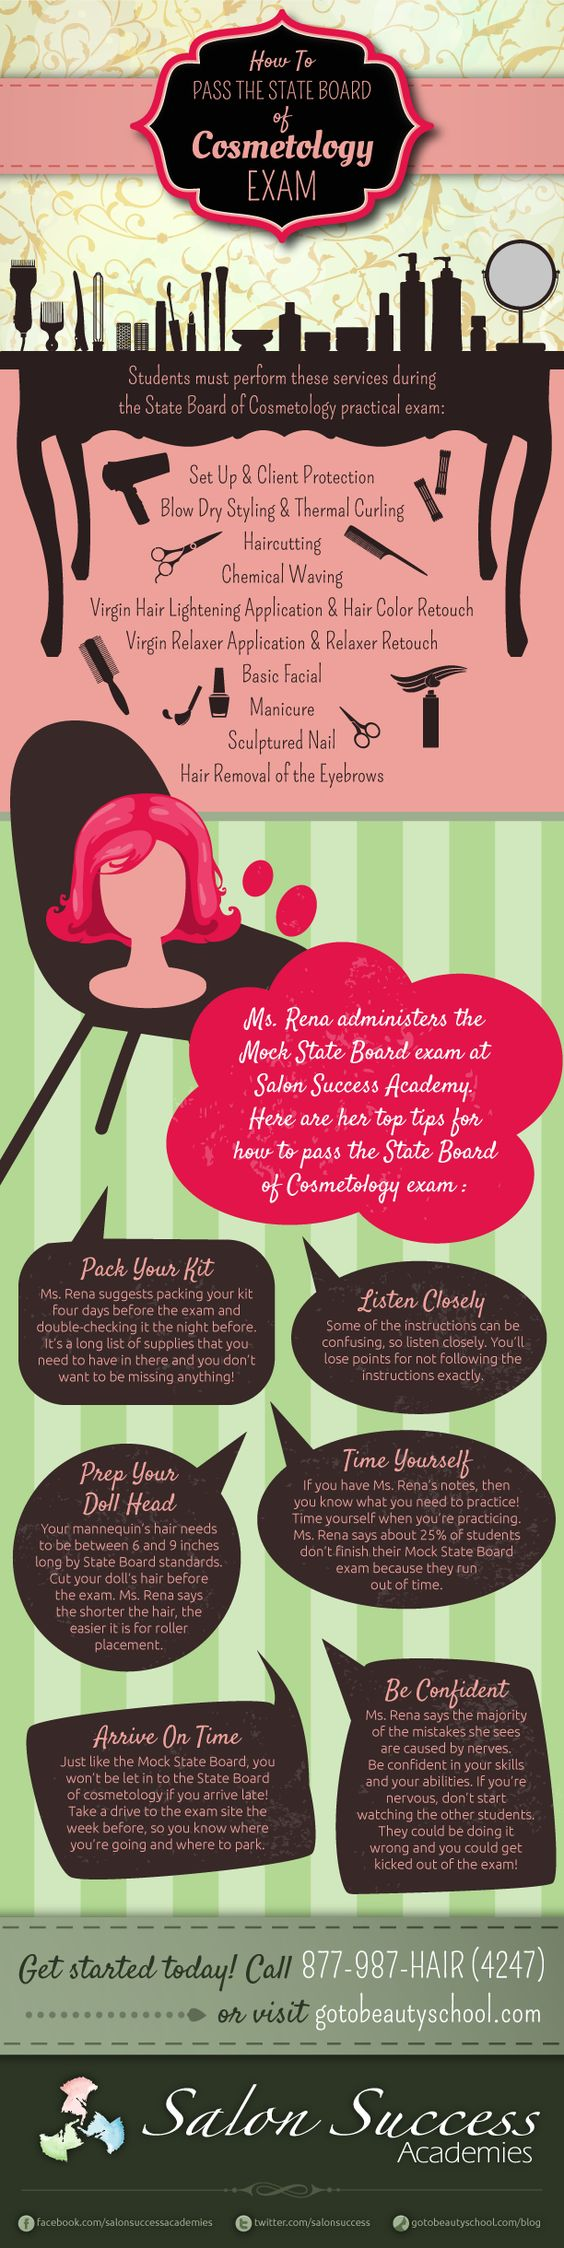 Tips for how to pass the state board of cosmetology exam and get your license!